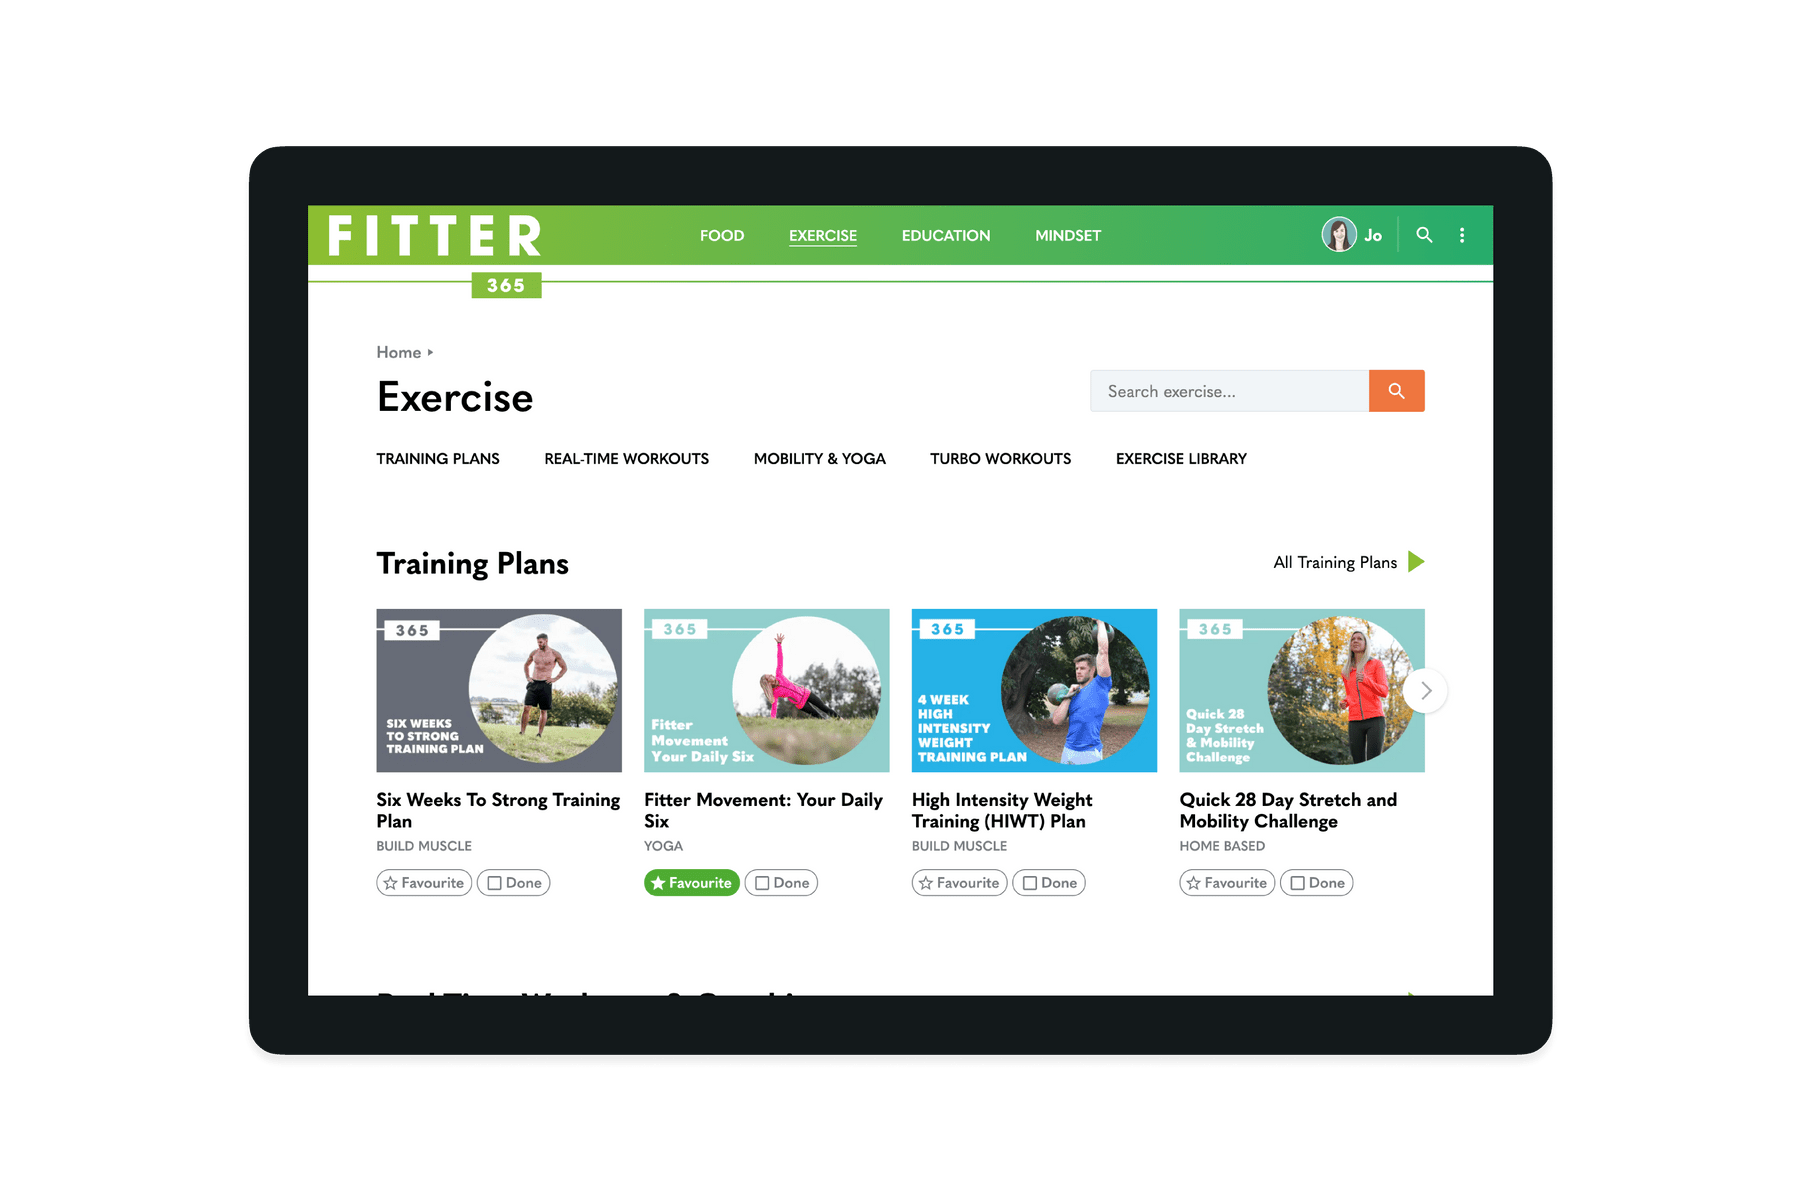 Tablet showing the exercise sesction of the Fitter 365 website